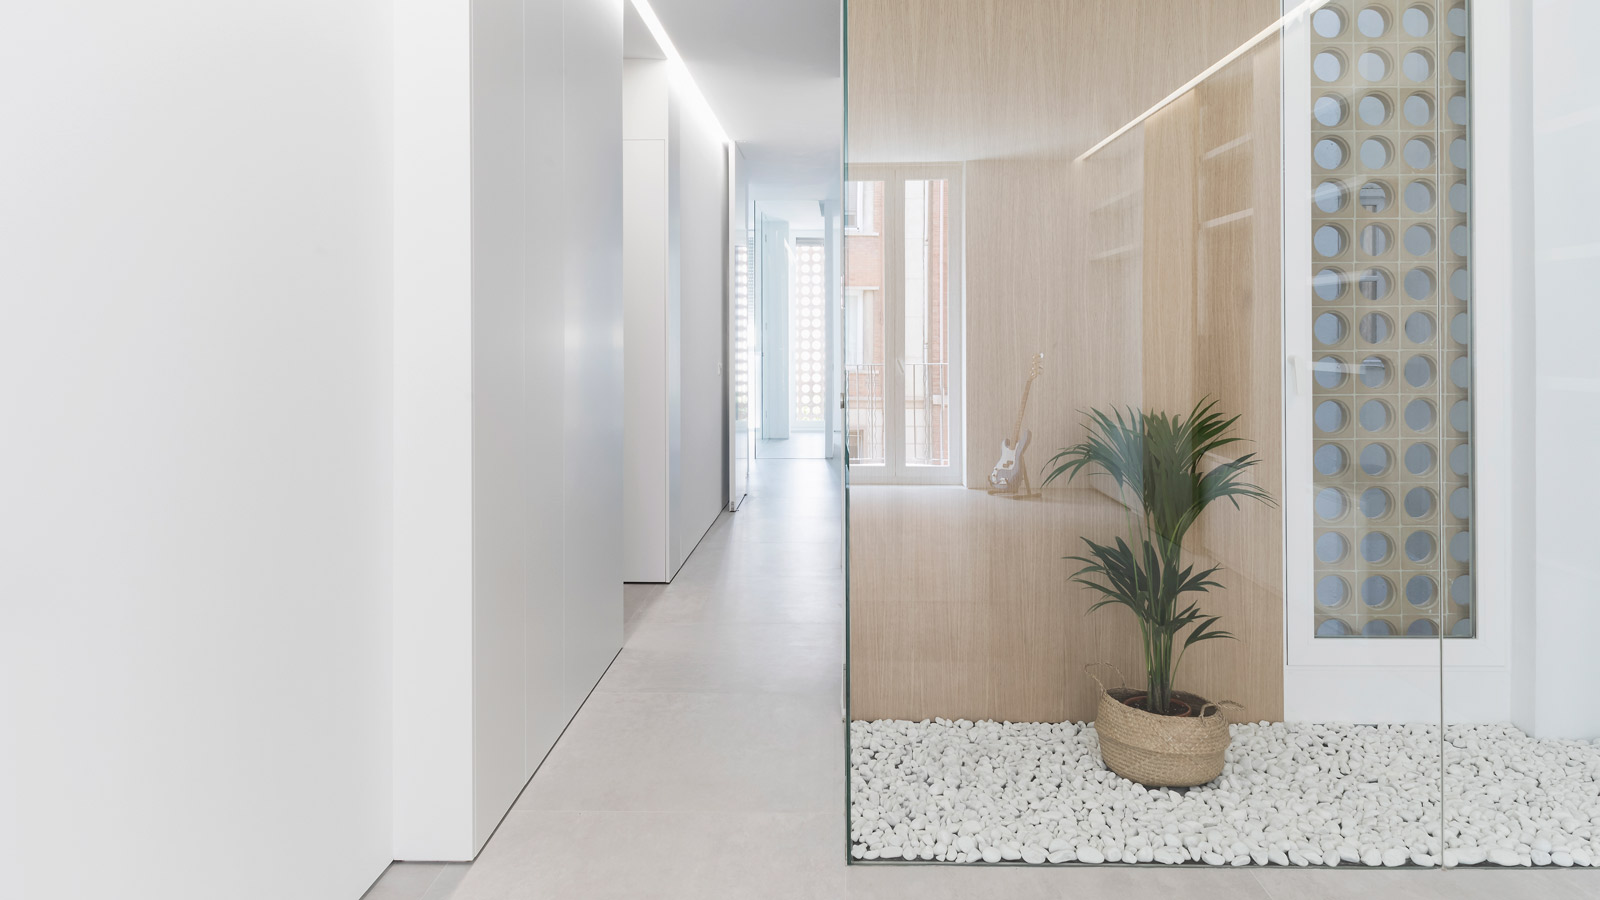 PORCELANOSA Group Projects: Una vivienda luminosa y simétrica en el centro de Valencia